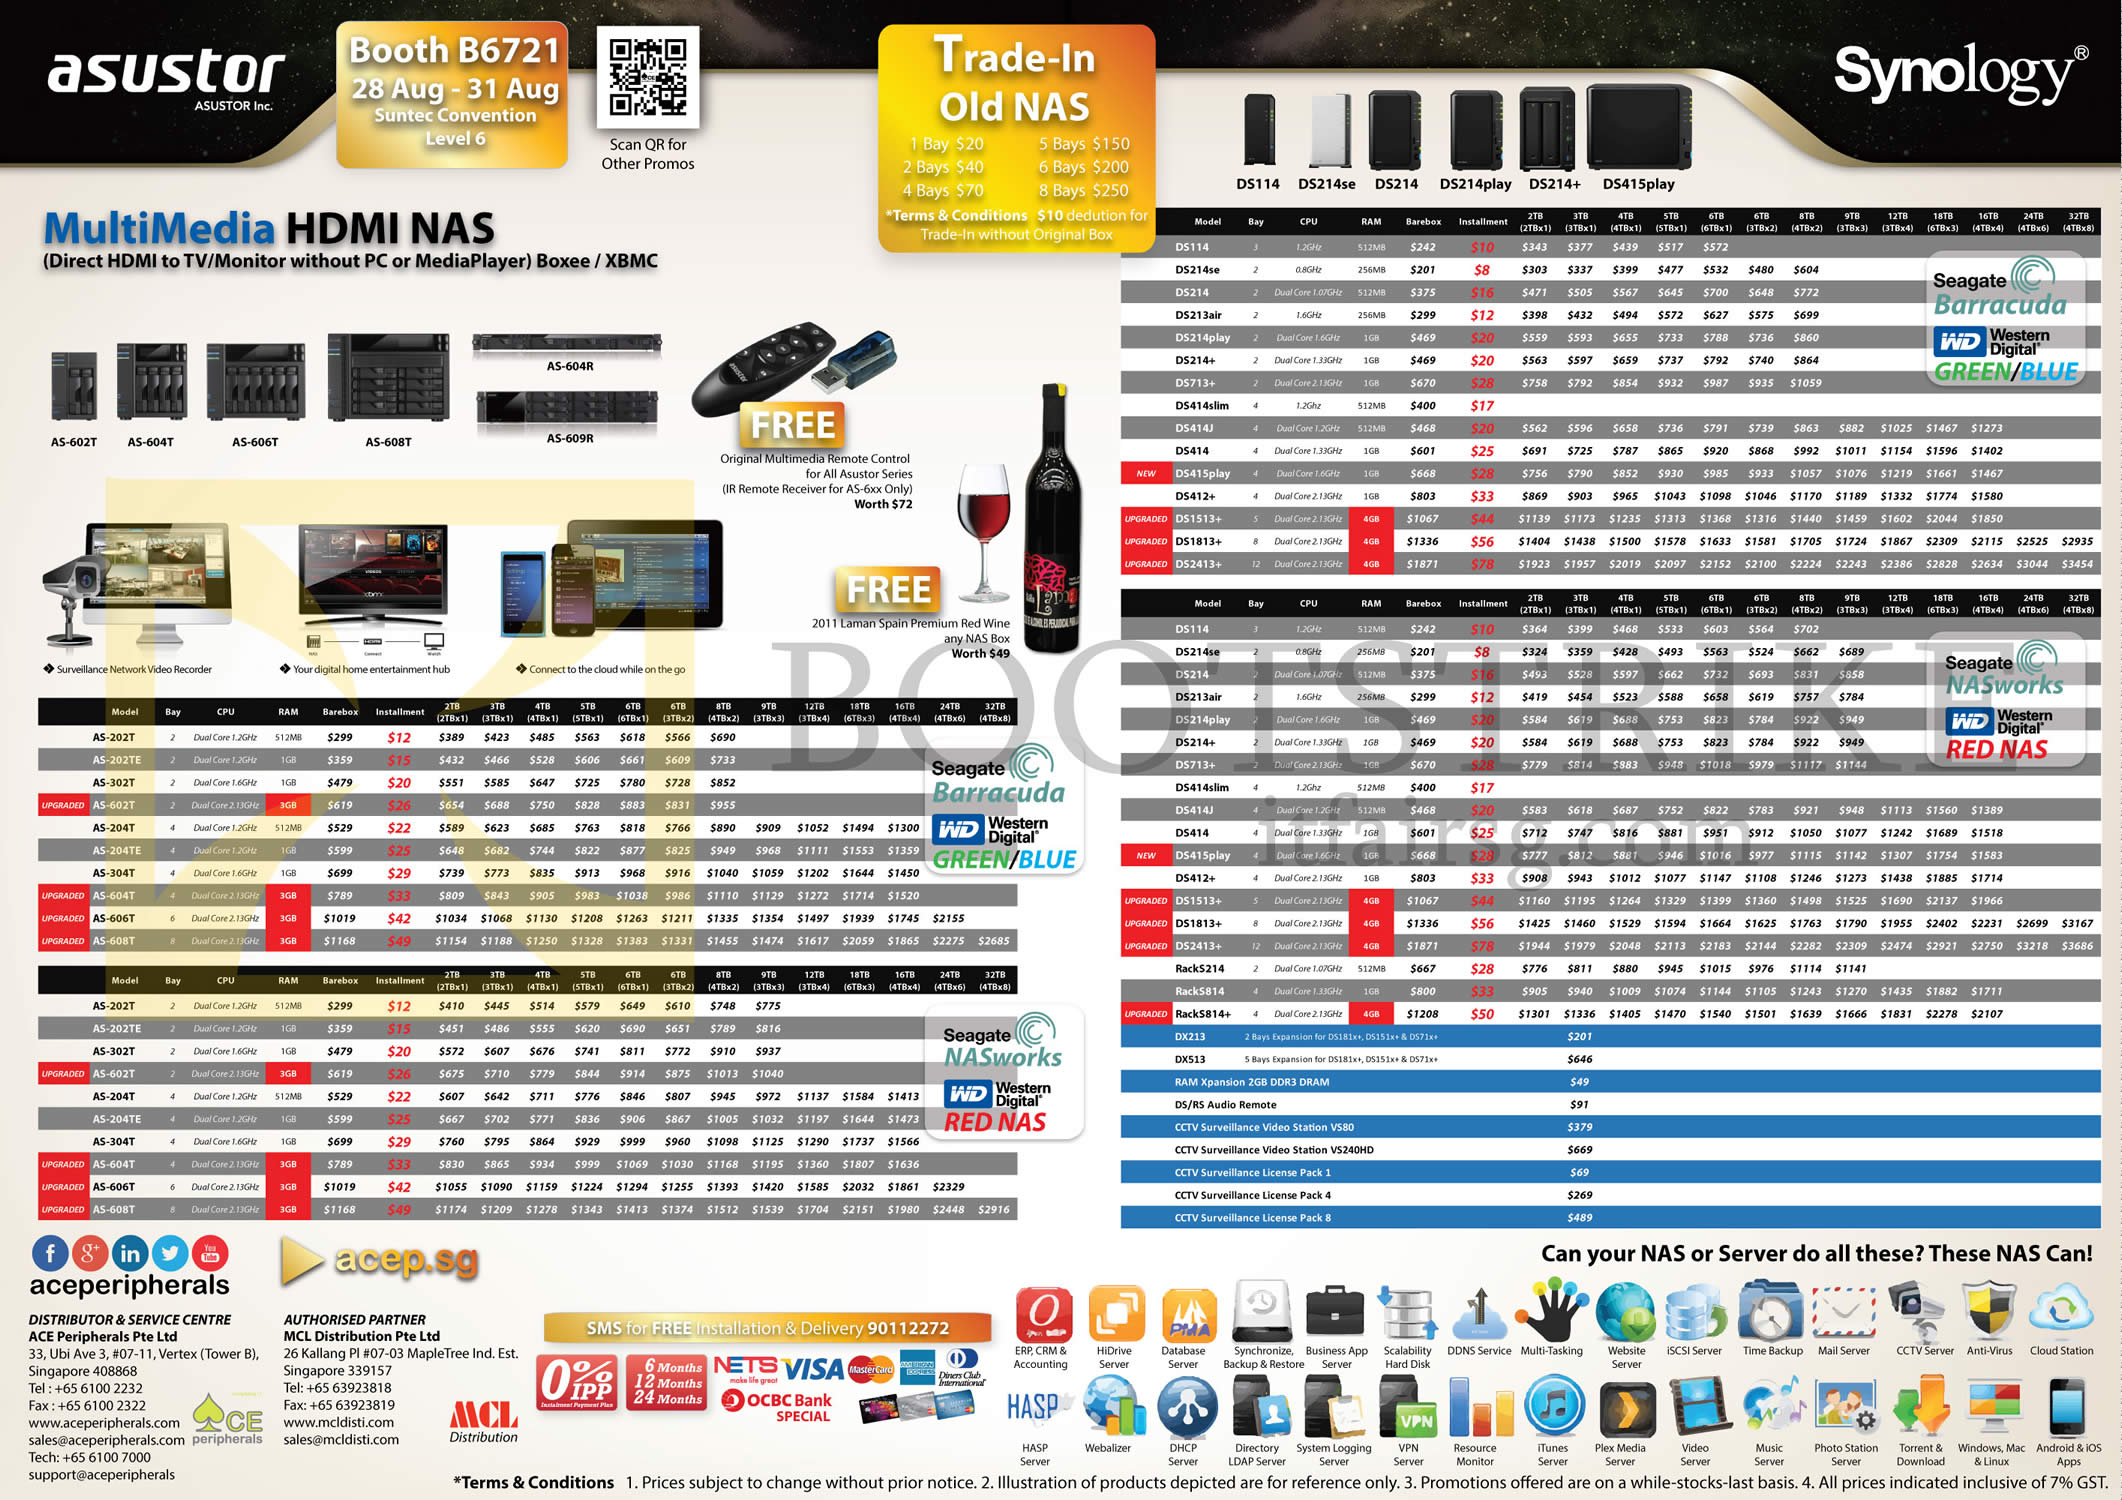 COMEX 2014 price list image brochure of ACE Peripherals NAS Asustor HiTi Nuance Synology DiskStation, Trade-in